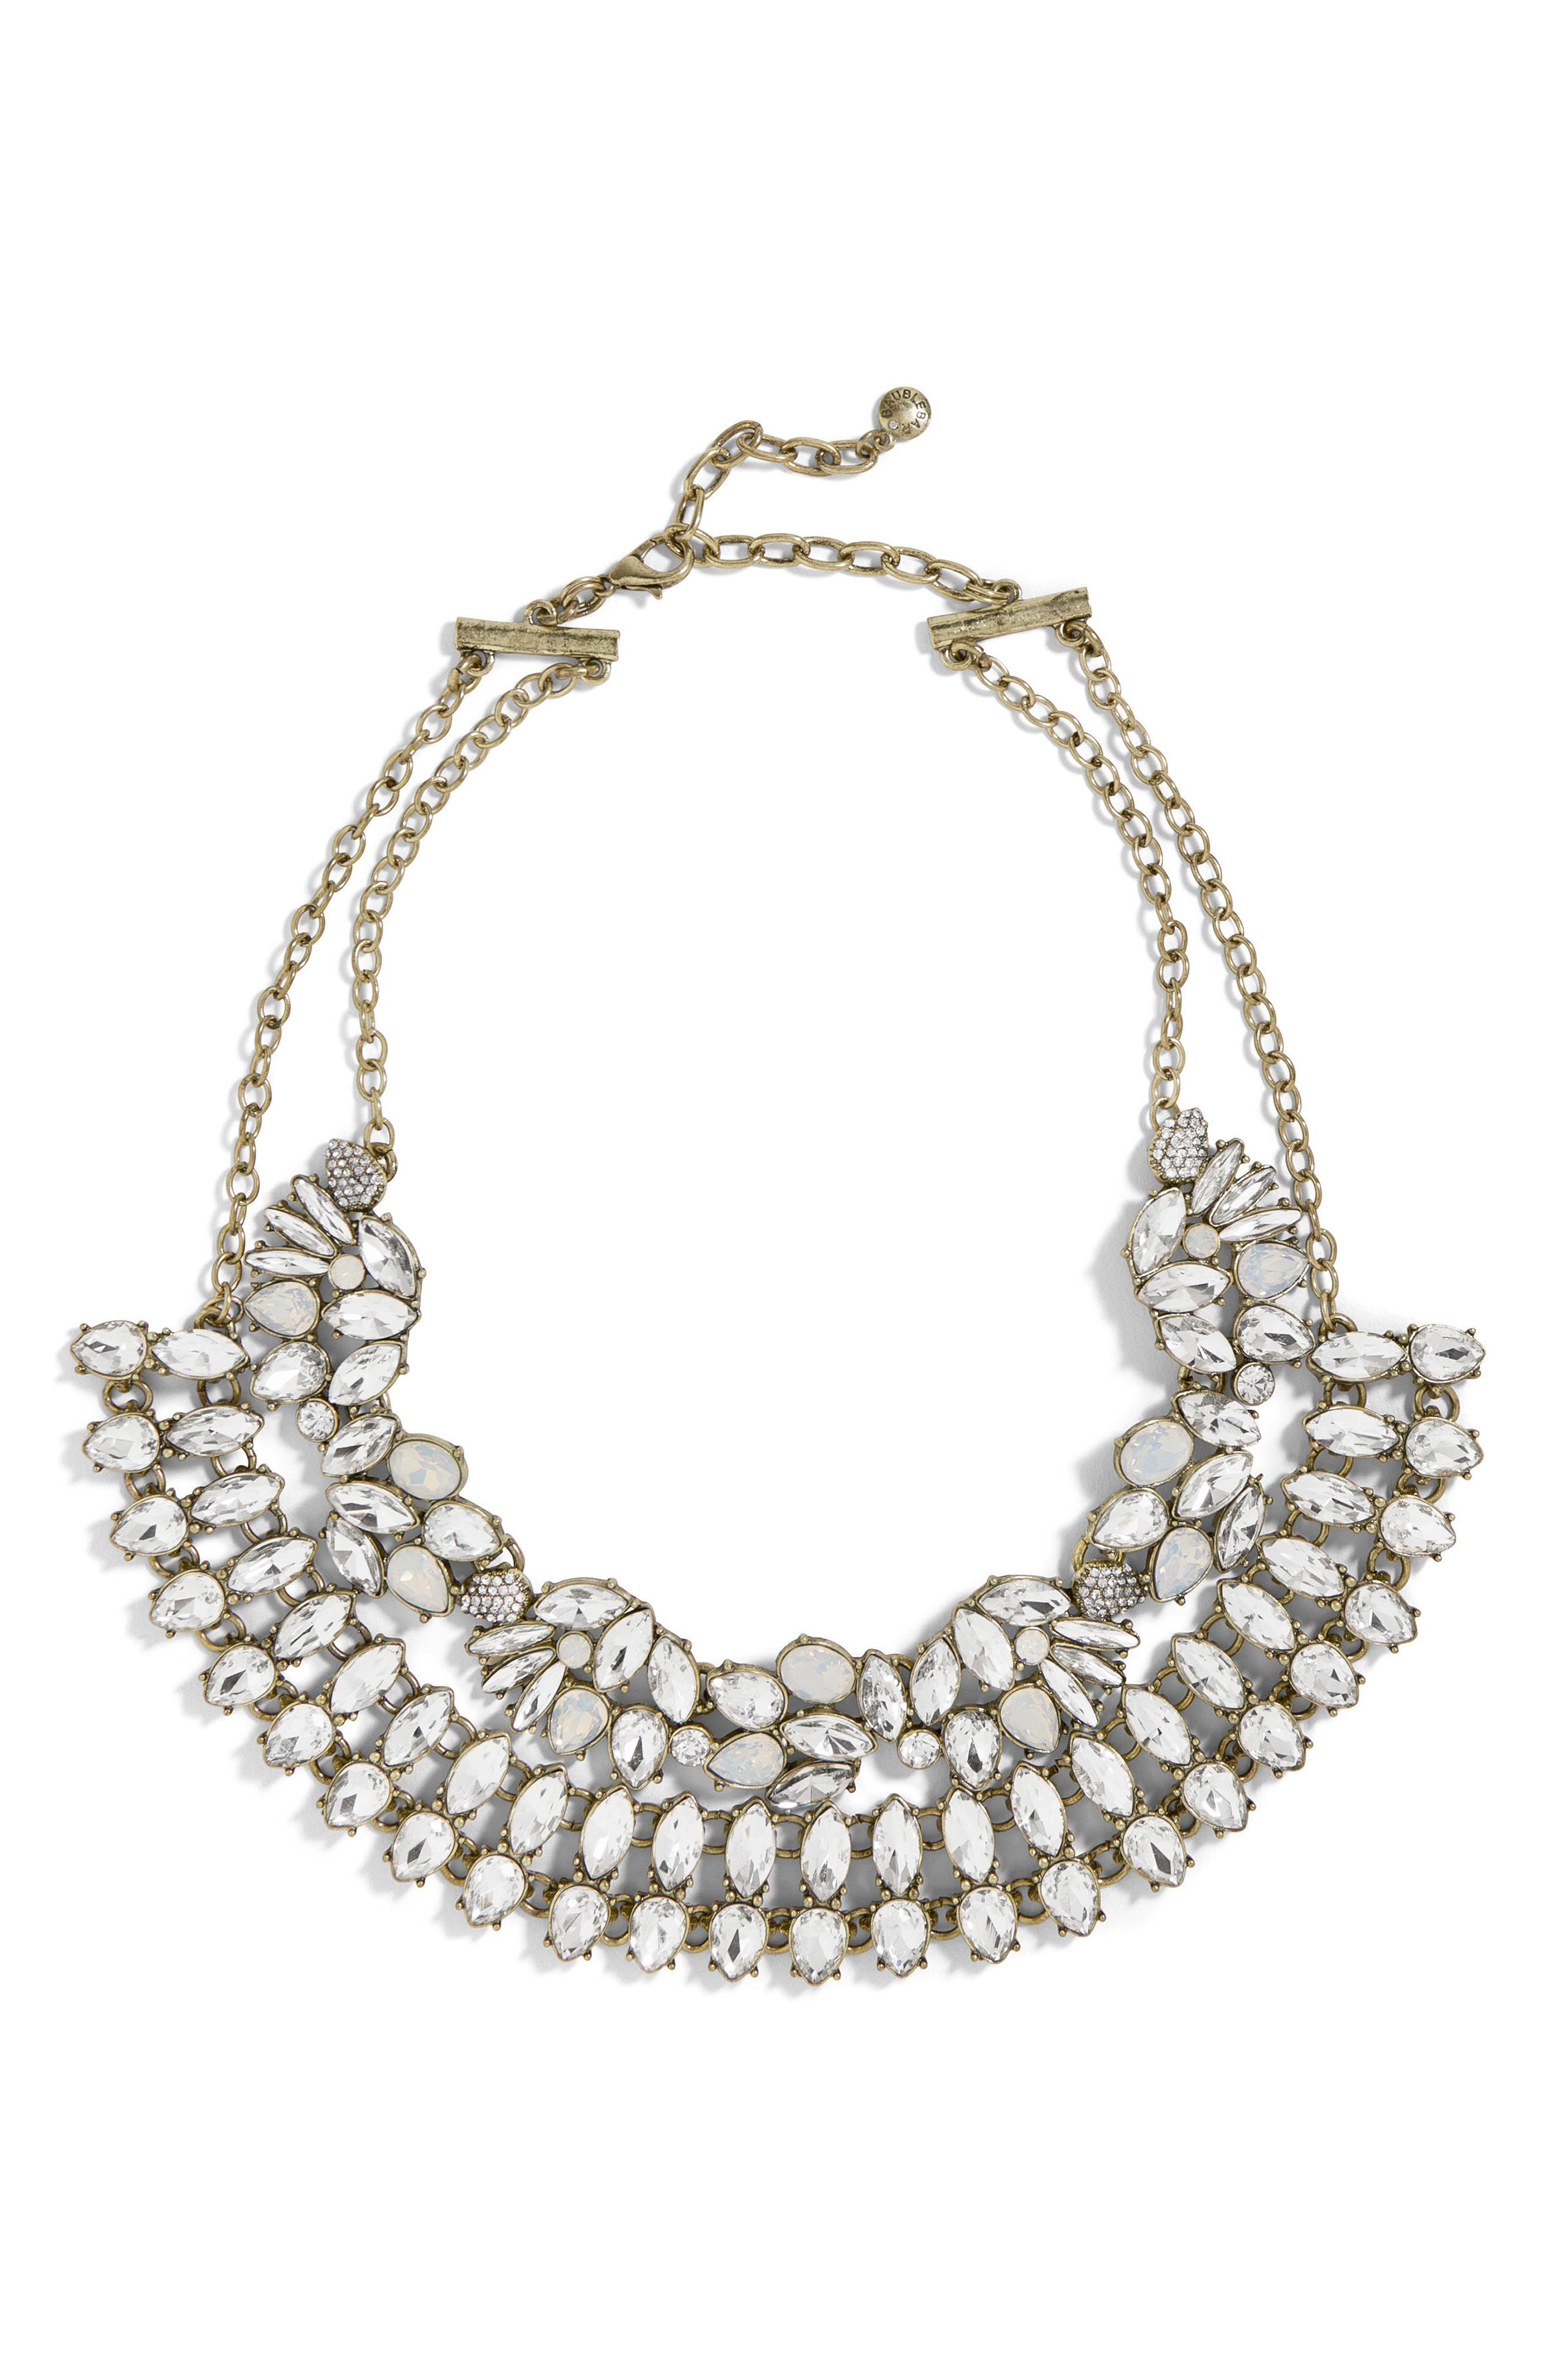 Evangeline Crystal Statement Necklace,                             Main thumbnail 1, color,                             040